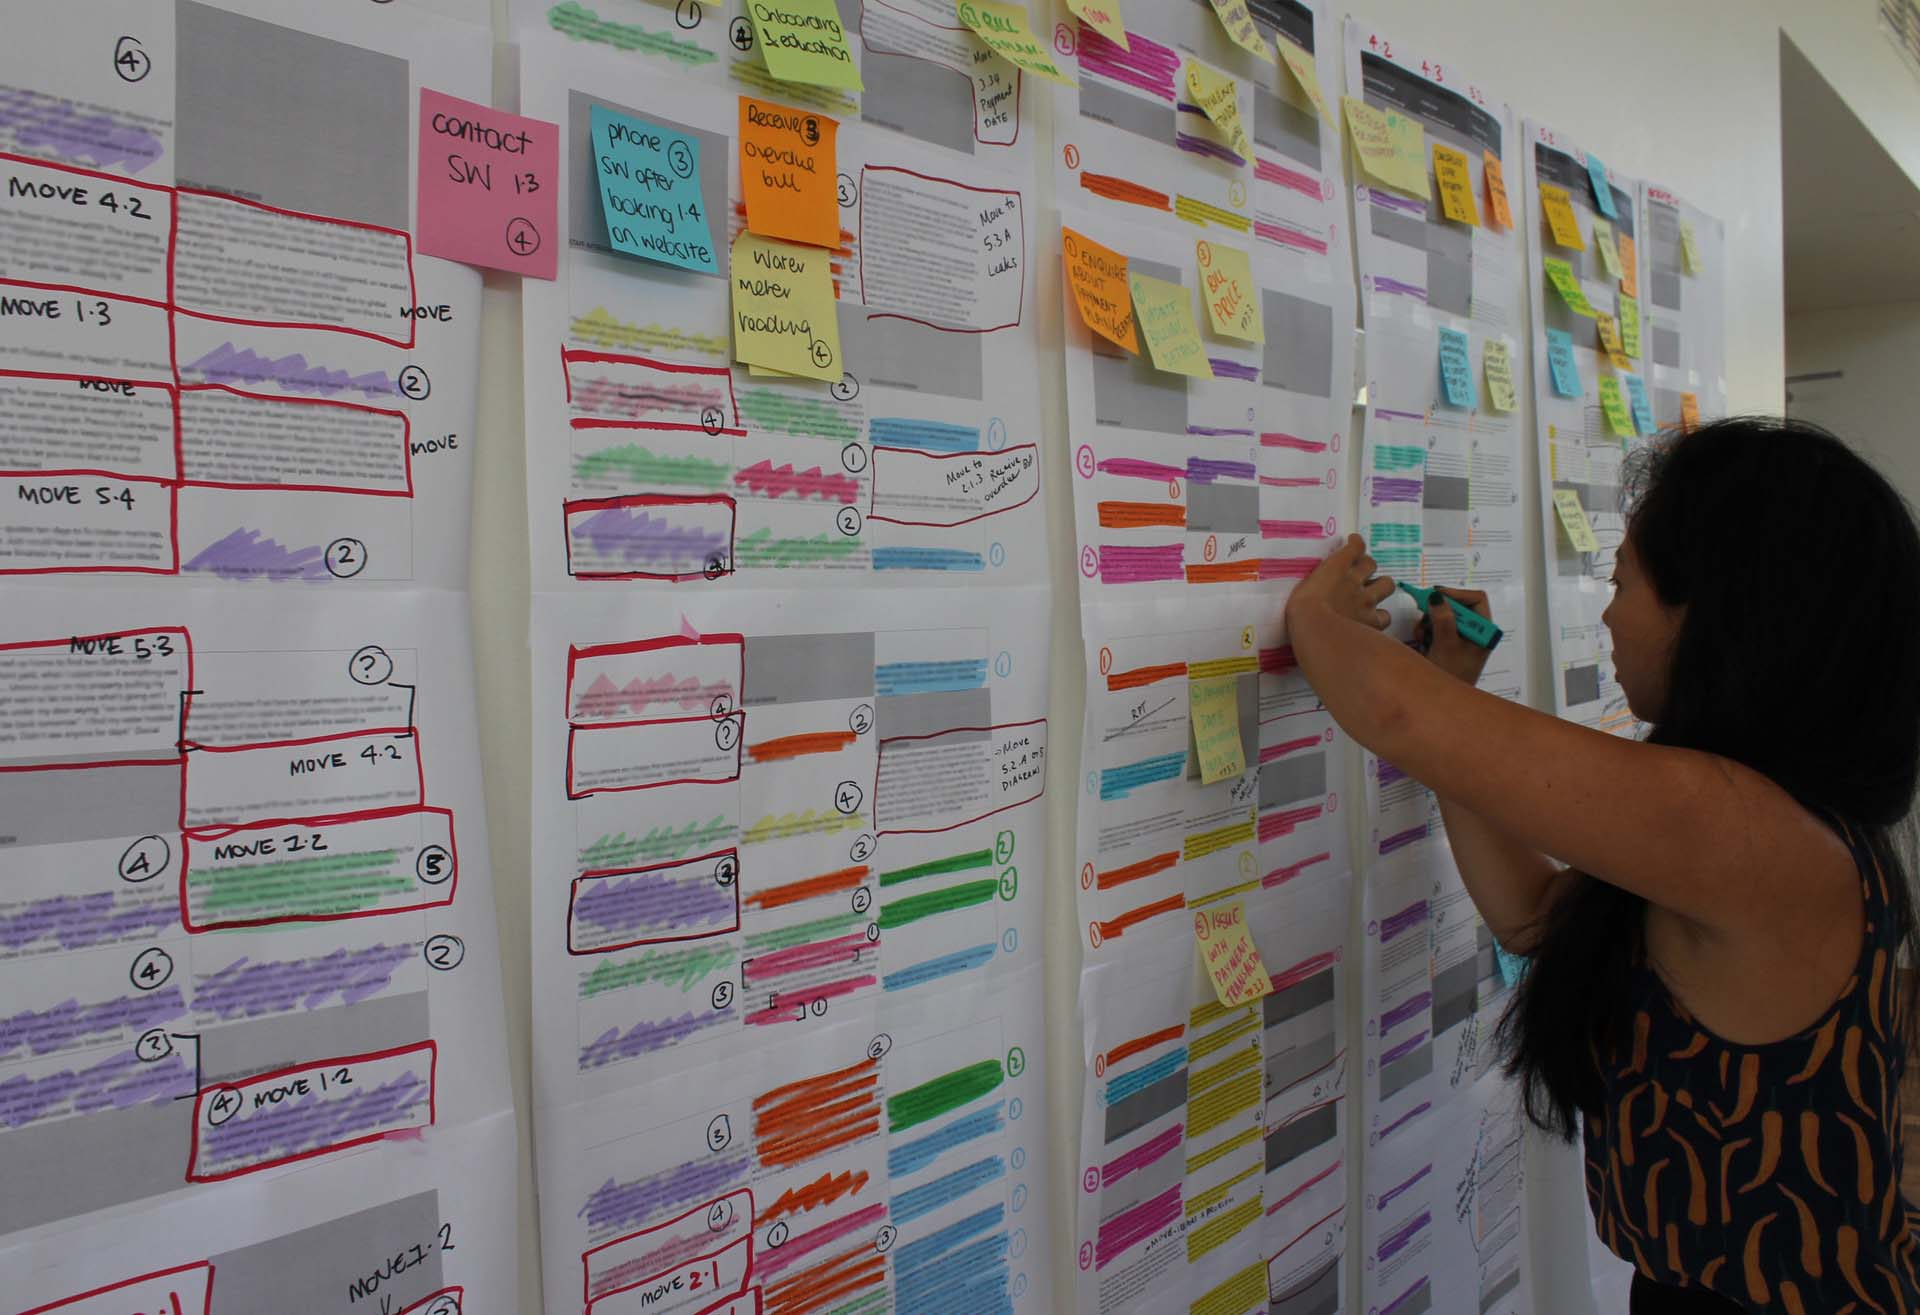 Proto experience designer making notes on a CX Strategy wall